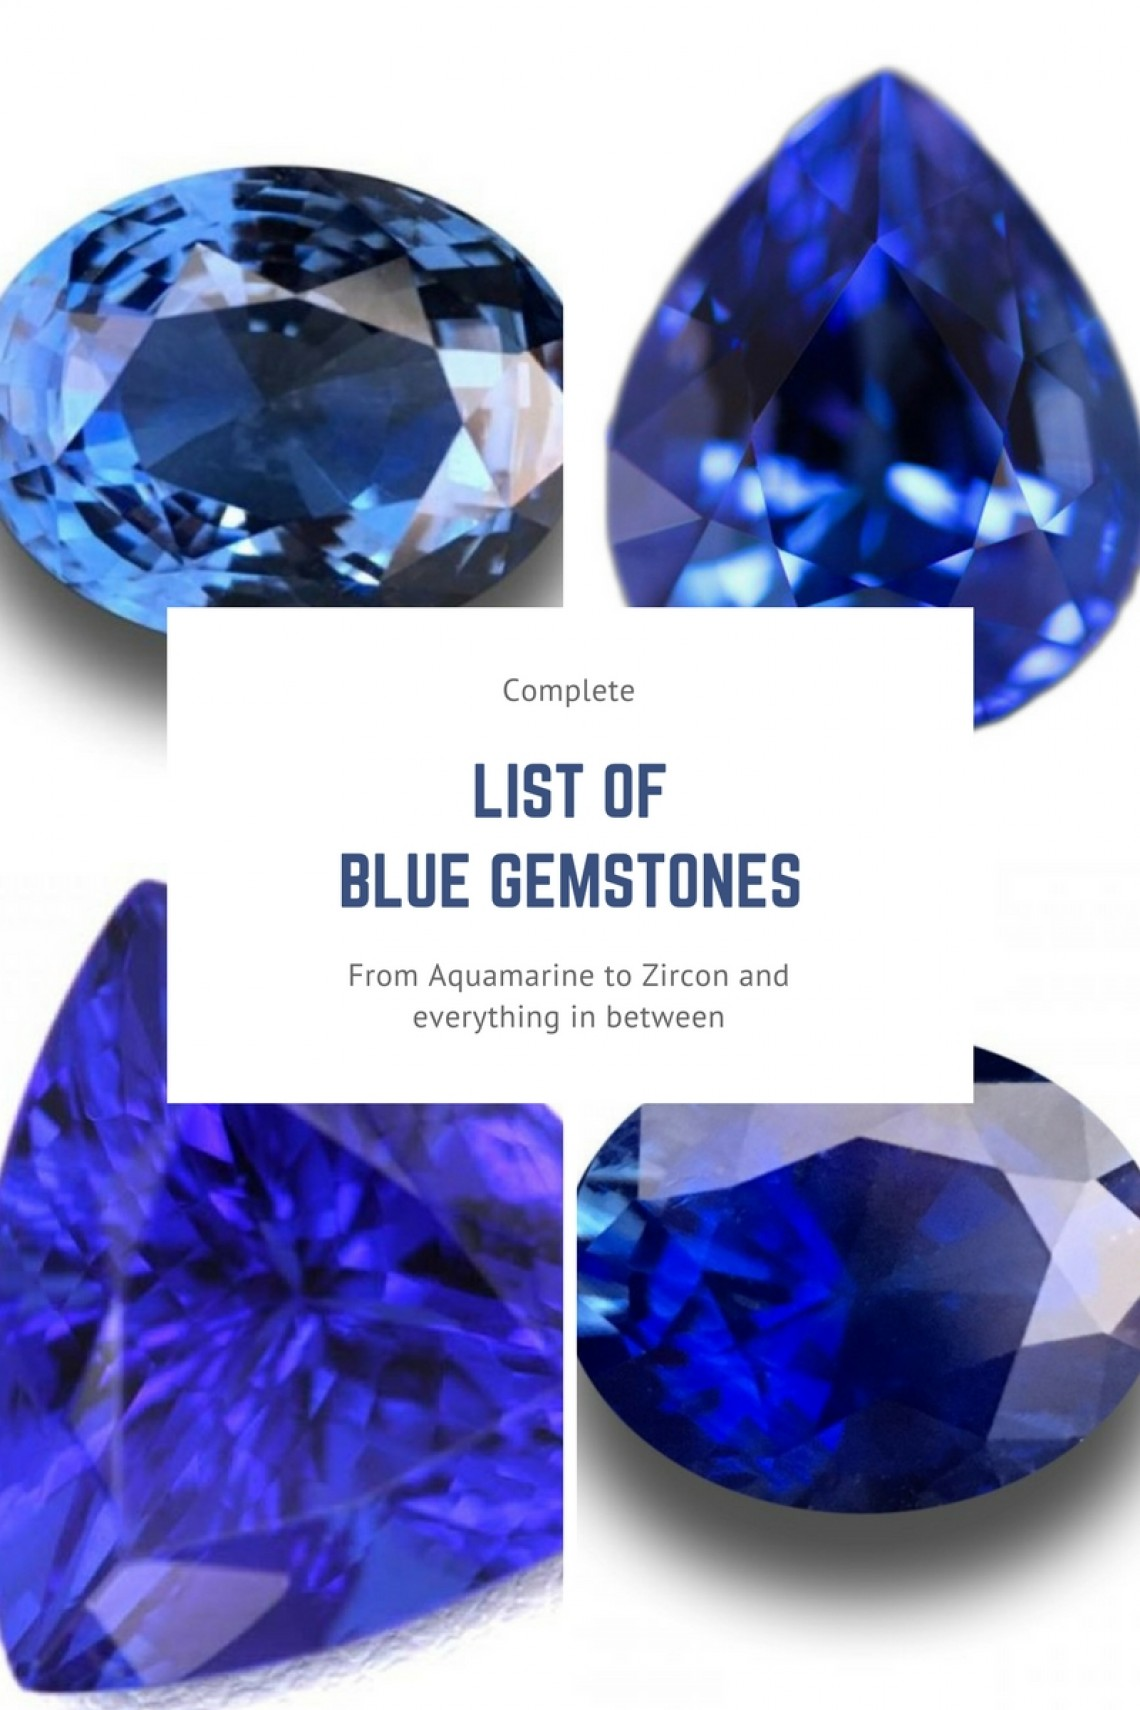 gemstones blue cornflower australia royal gems stone available sydney from sapphire gemstone fine loose pear coloured king ceylon